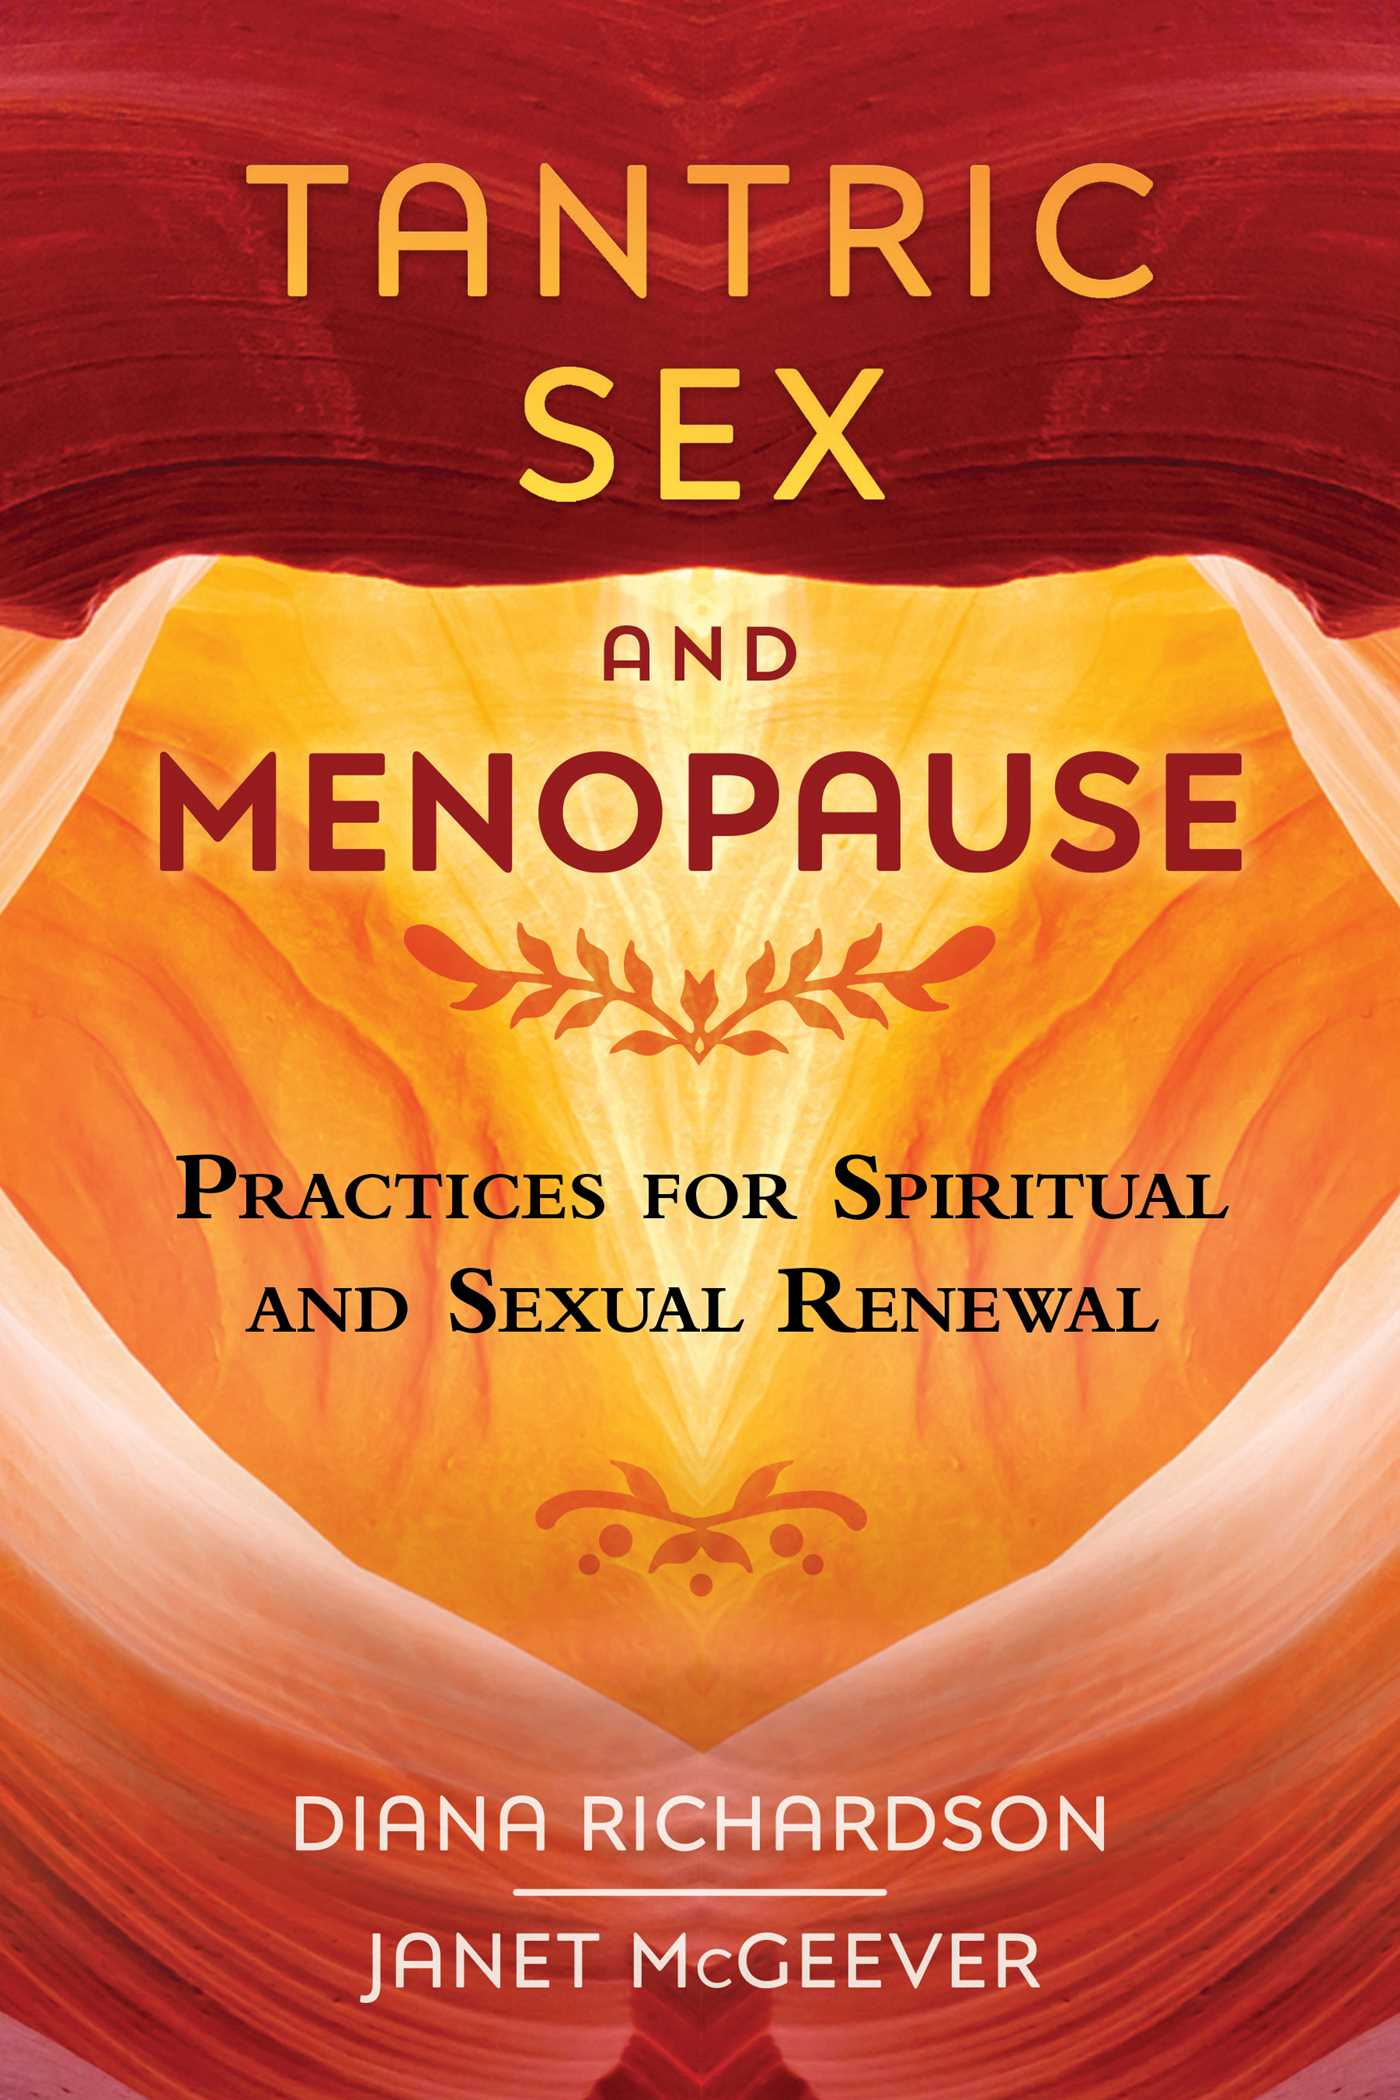 Tantric sex and menopause 9781620556832 hr